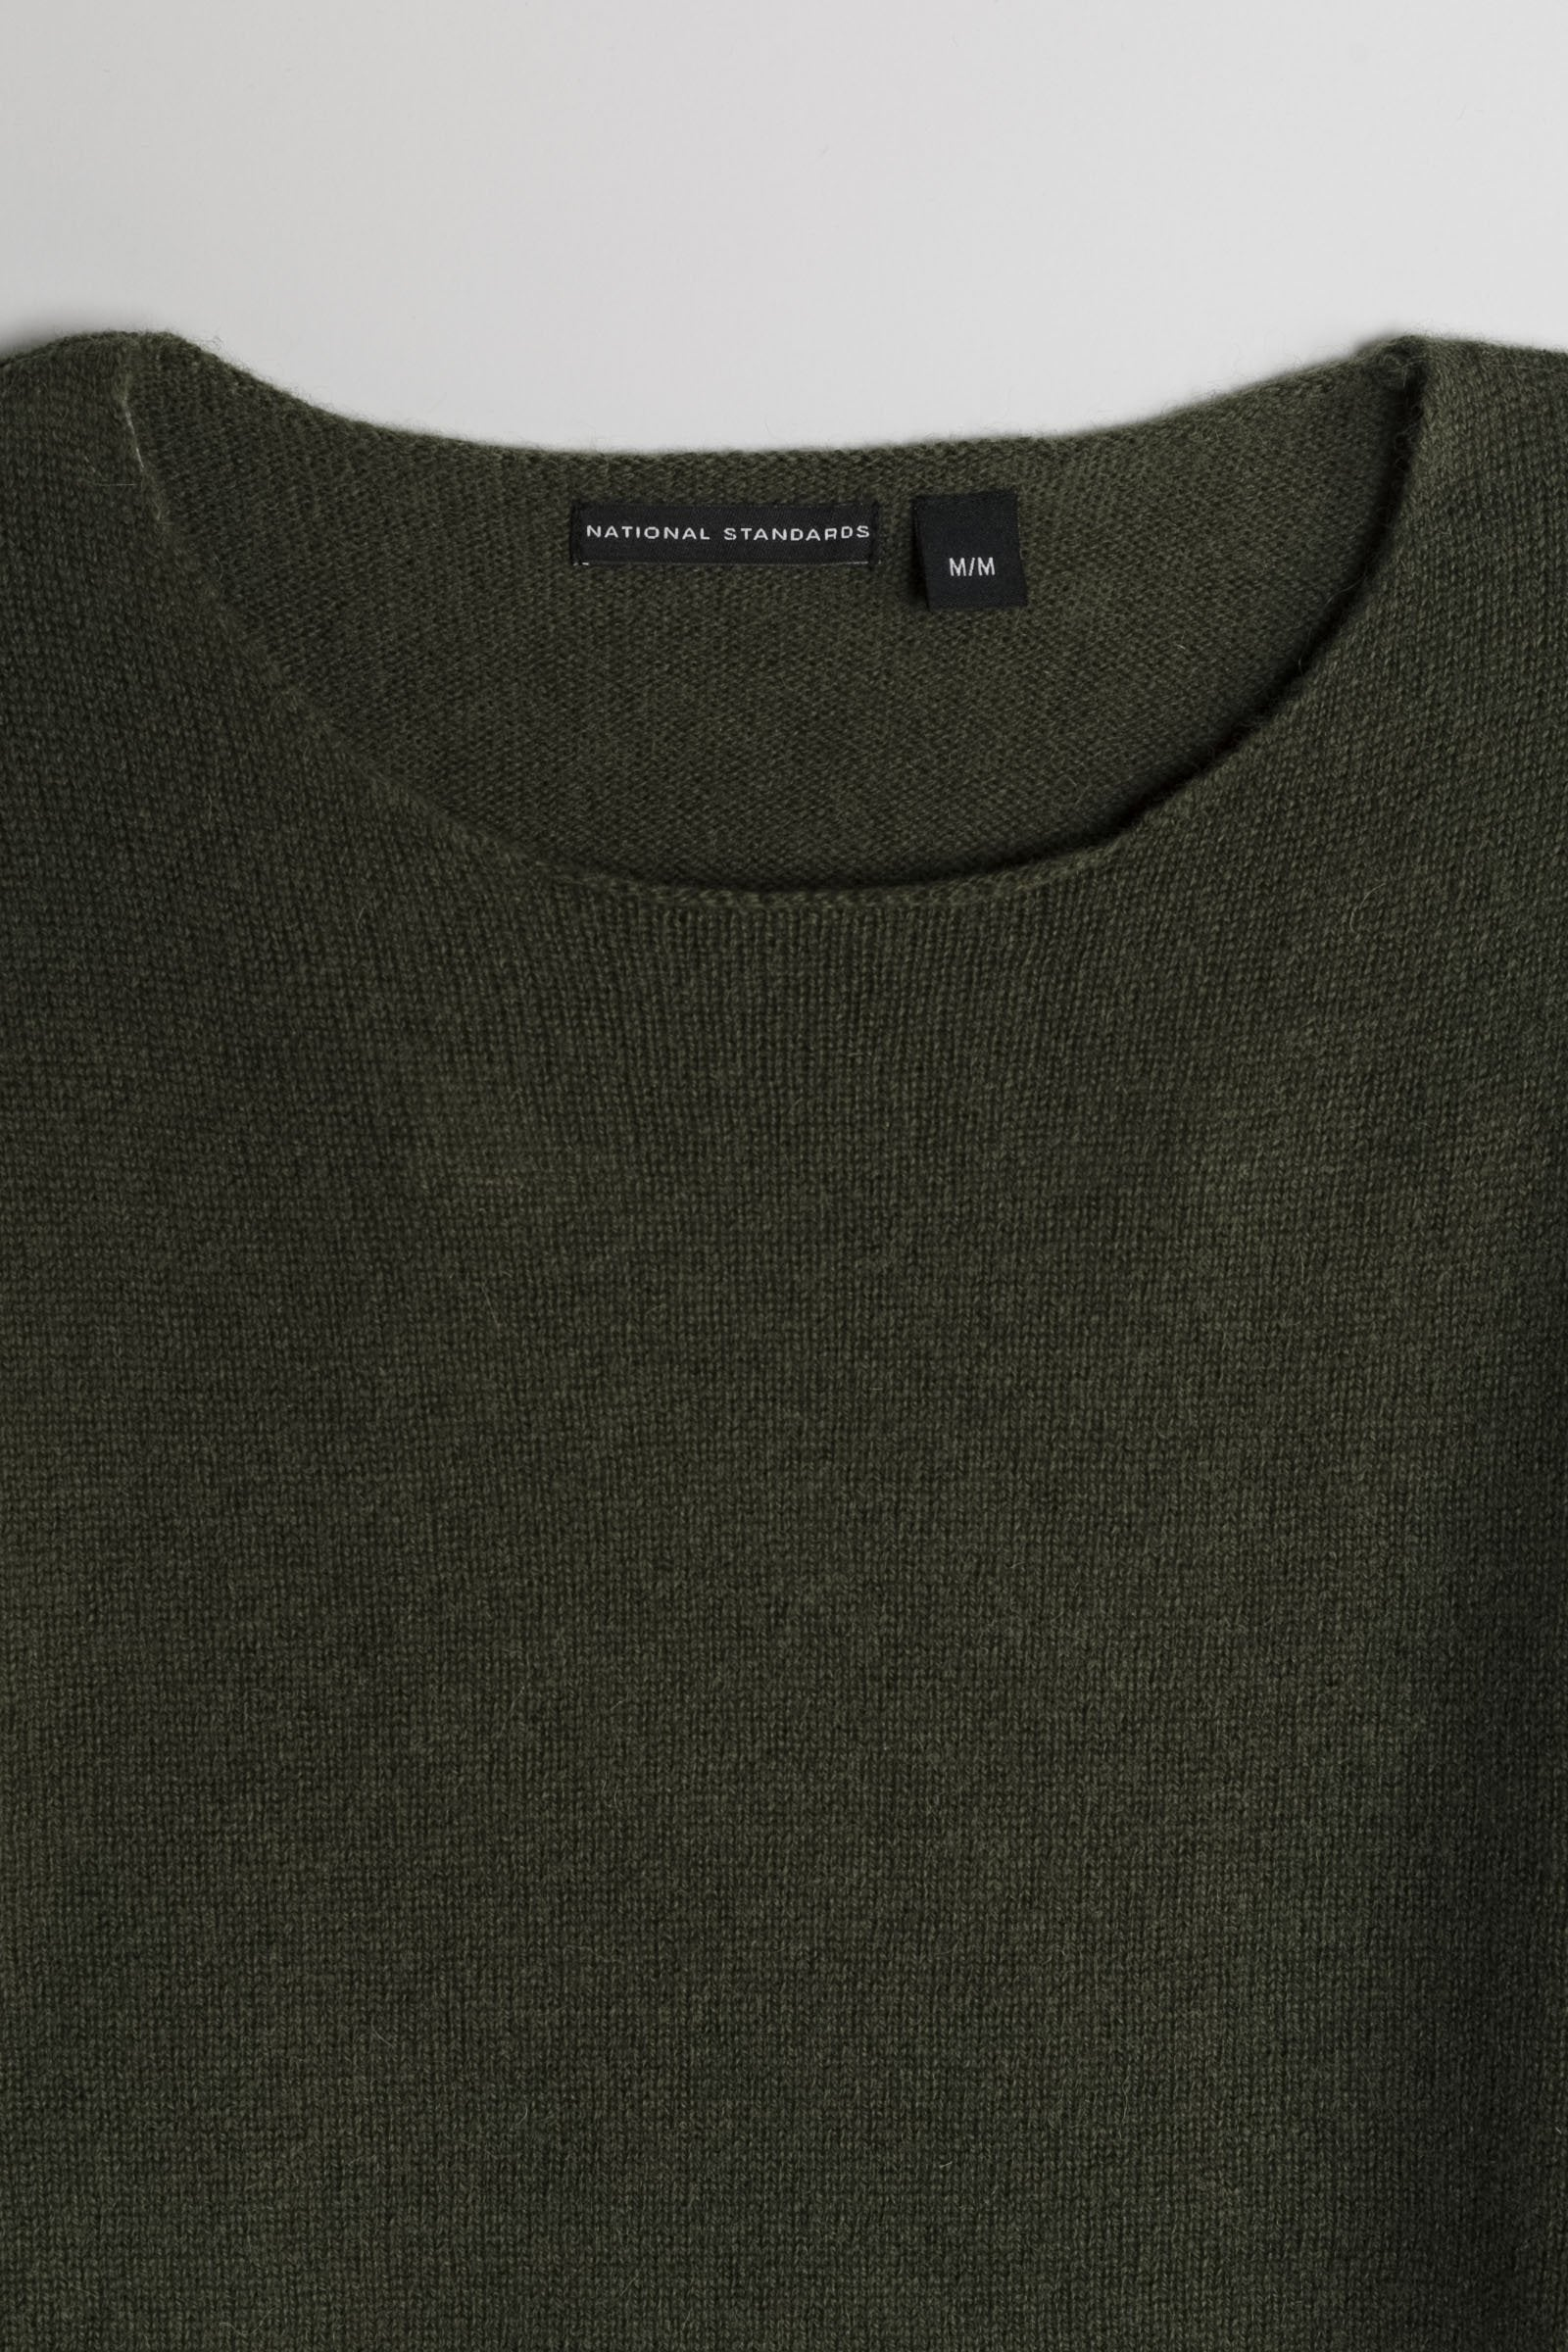 Lambswool Wide Neck in Army Green 02